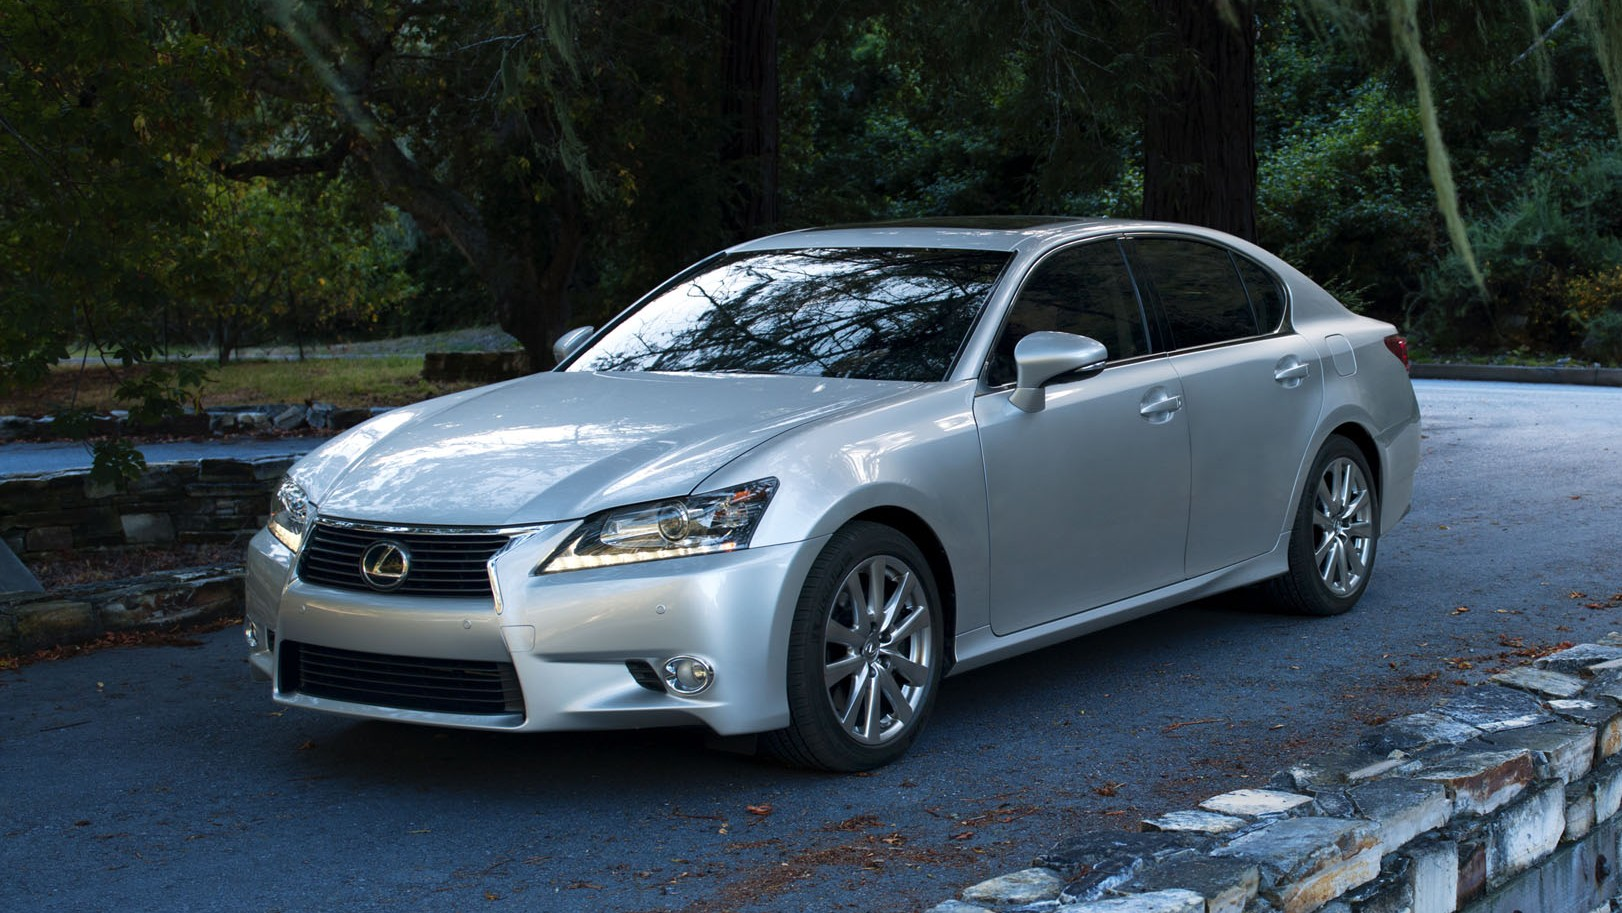 2015 lexus gs 350 review ratings specs prices and photos the car connection. Black Bedroom Furniture Sets. Home Design Ideas